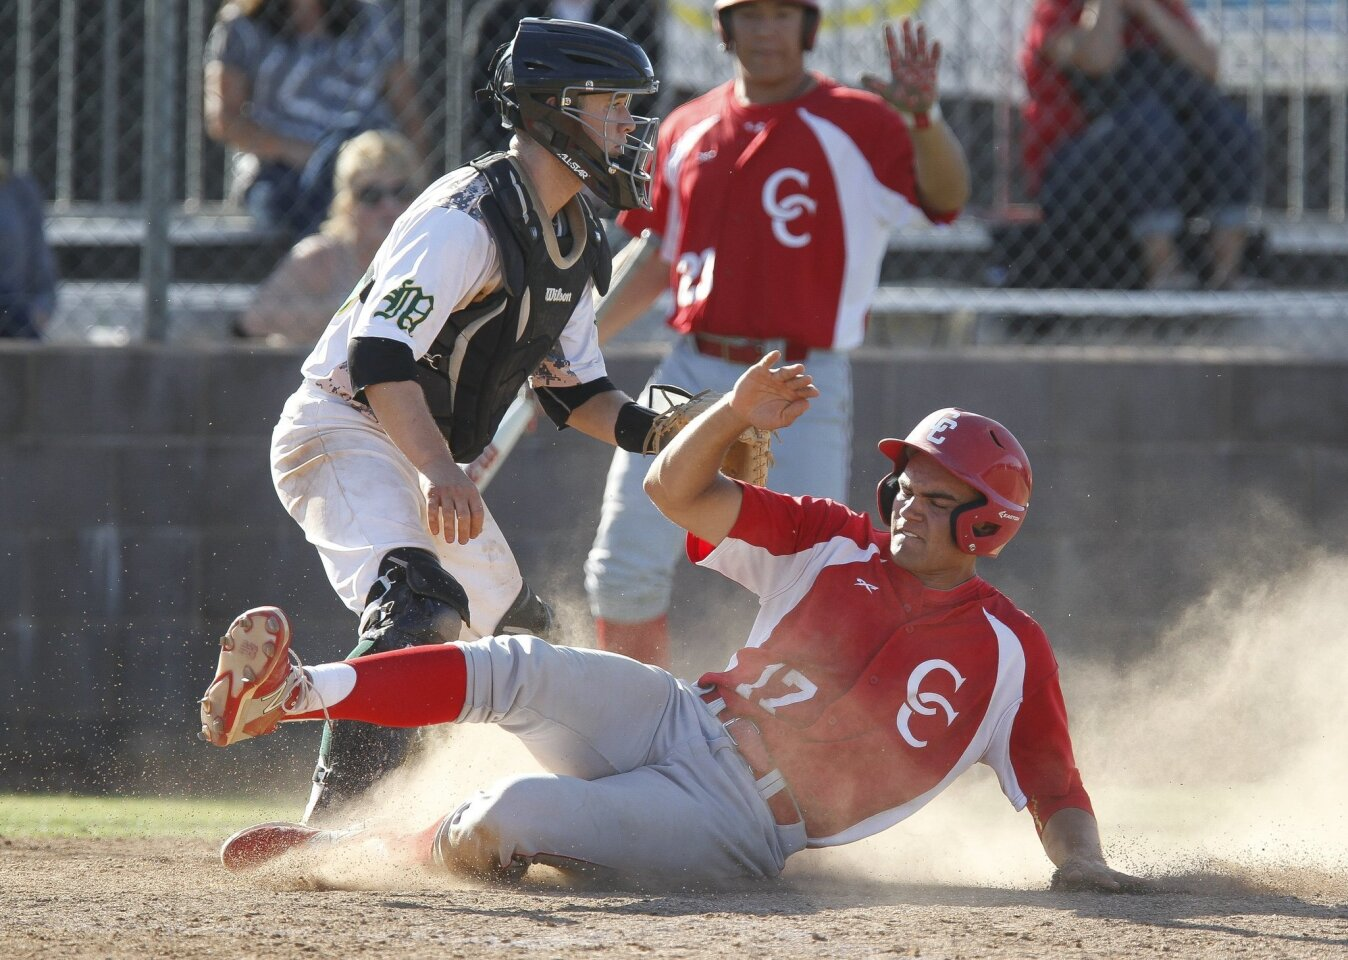 Cathedral Catholic's John Cresto, pictured scoring earlier in the season against Moorpark, had three triples against St. Augustine to tie a single-game section record.